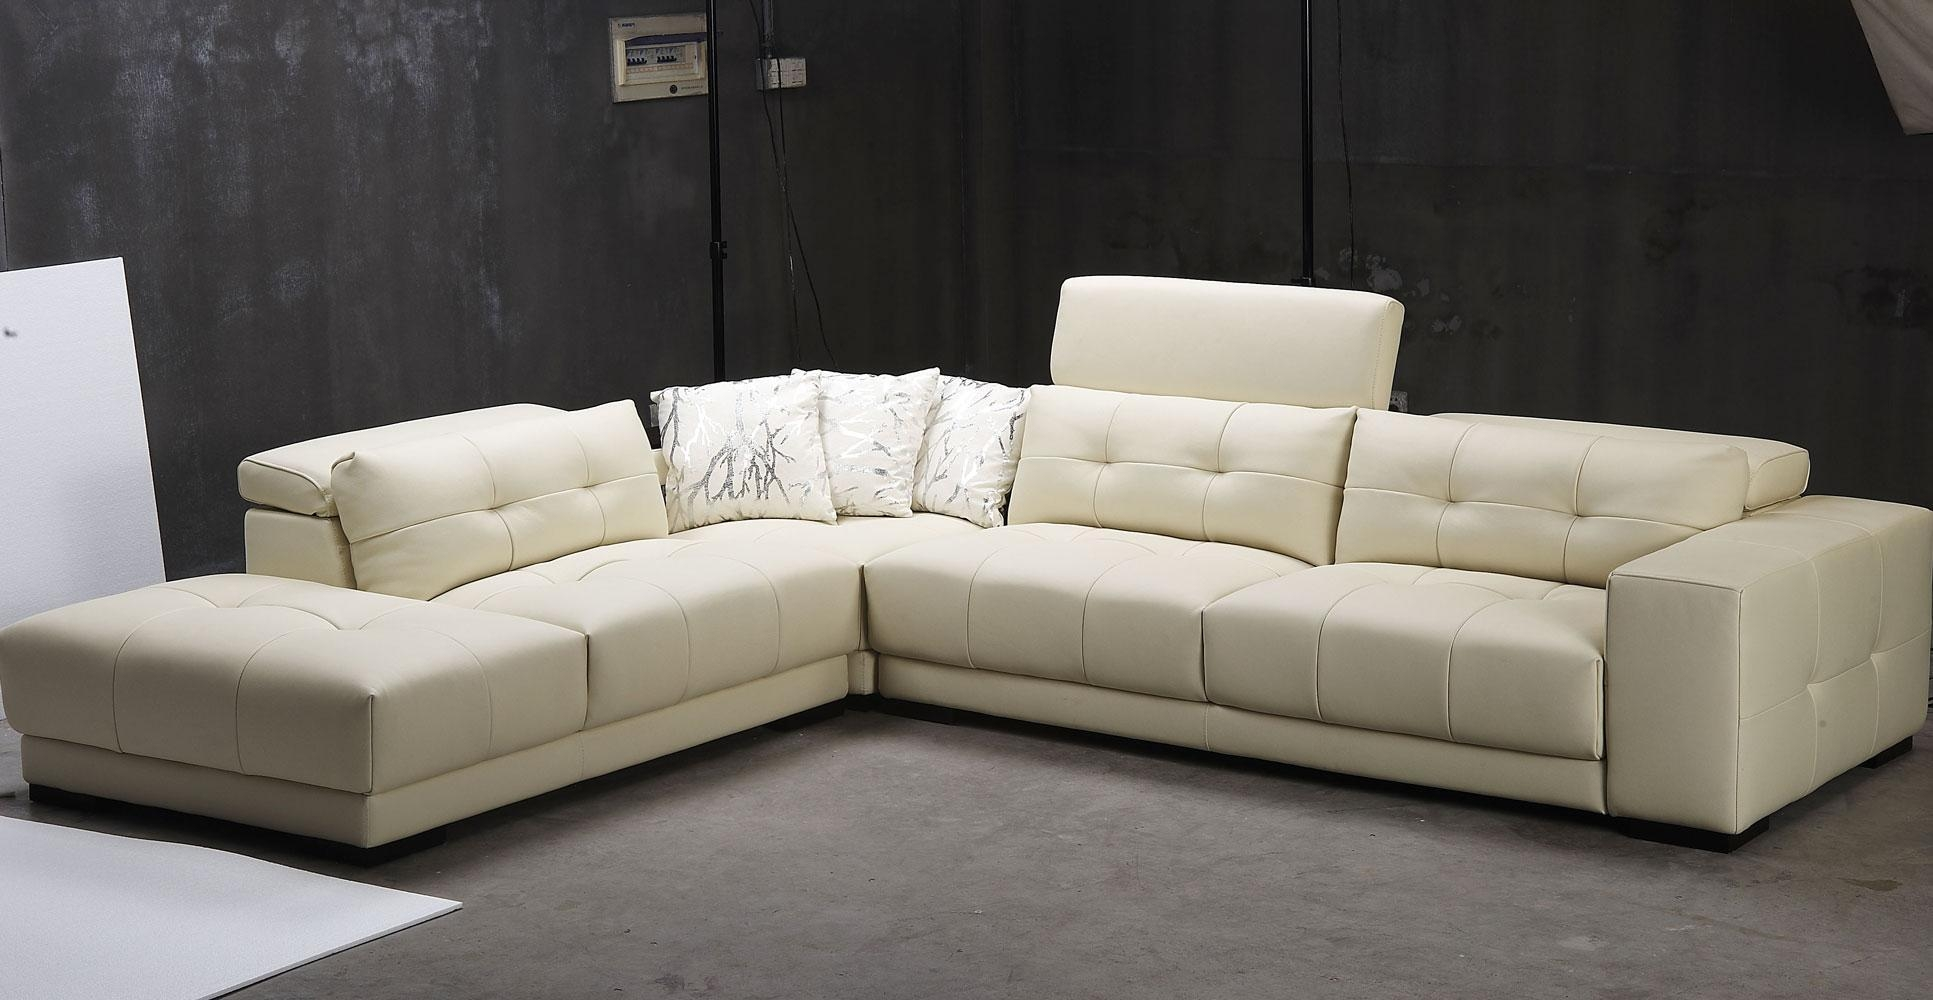 Sofas : Fabulous Leather Sleeper Sofa Sofas And Sectionals Modern Regarding Cream Sectional Leather Sofas (View 16 of 22)